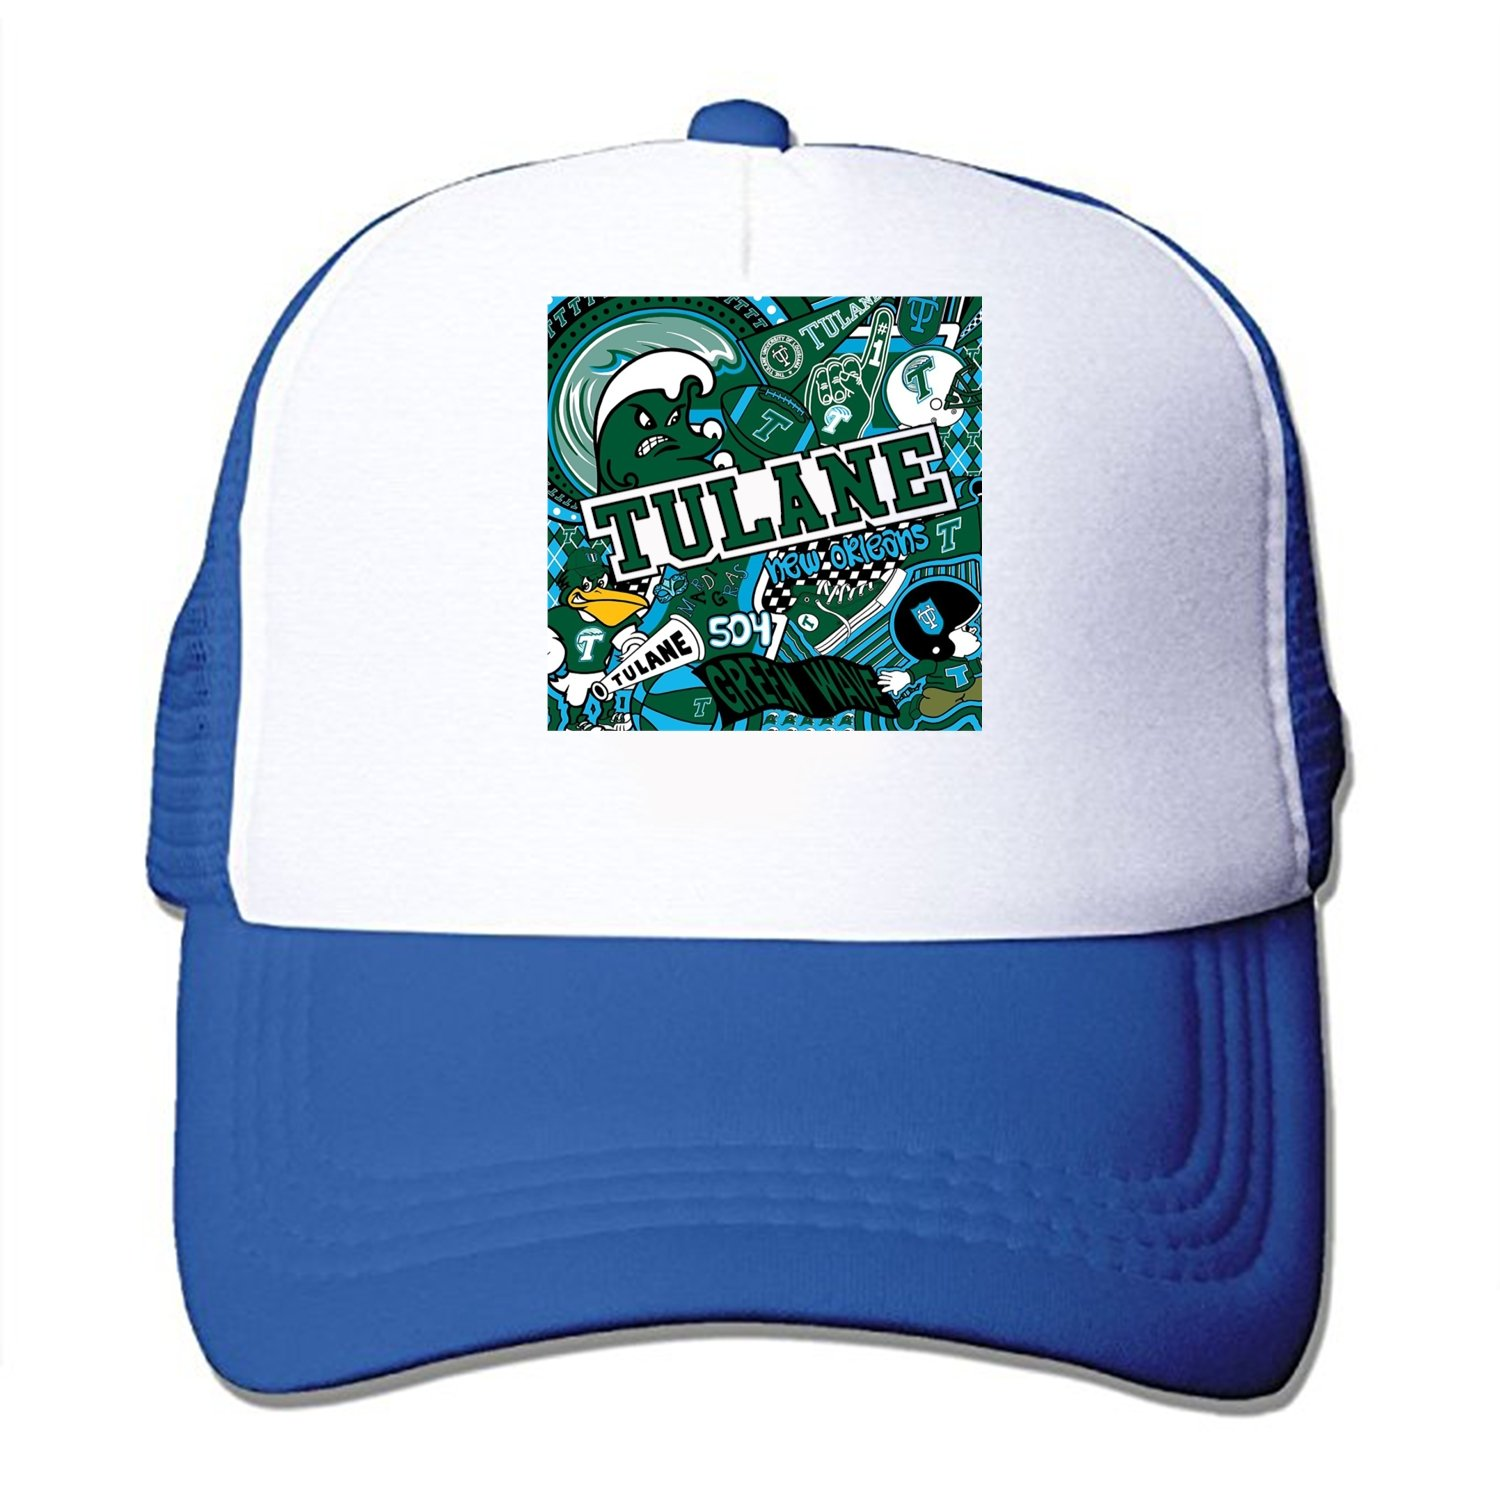 ... italy tulane collage mesh back trucker cap low profile adjustable  snapback hat at amazon mens clothing d70170fc61f3